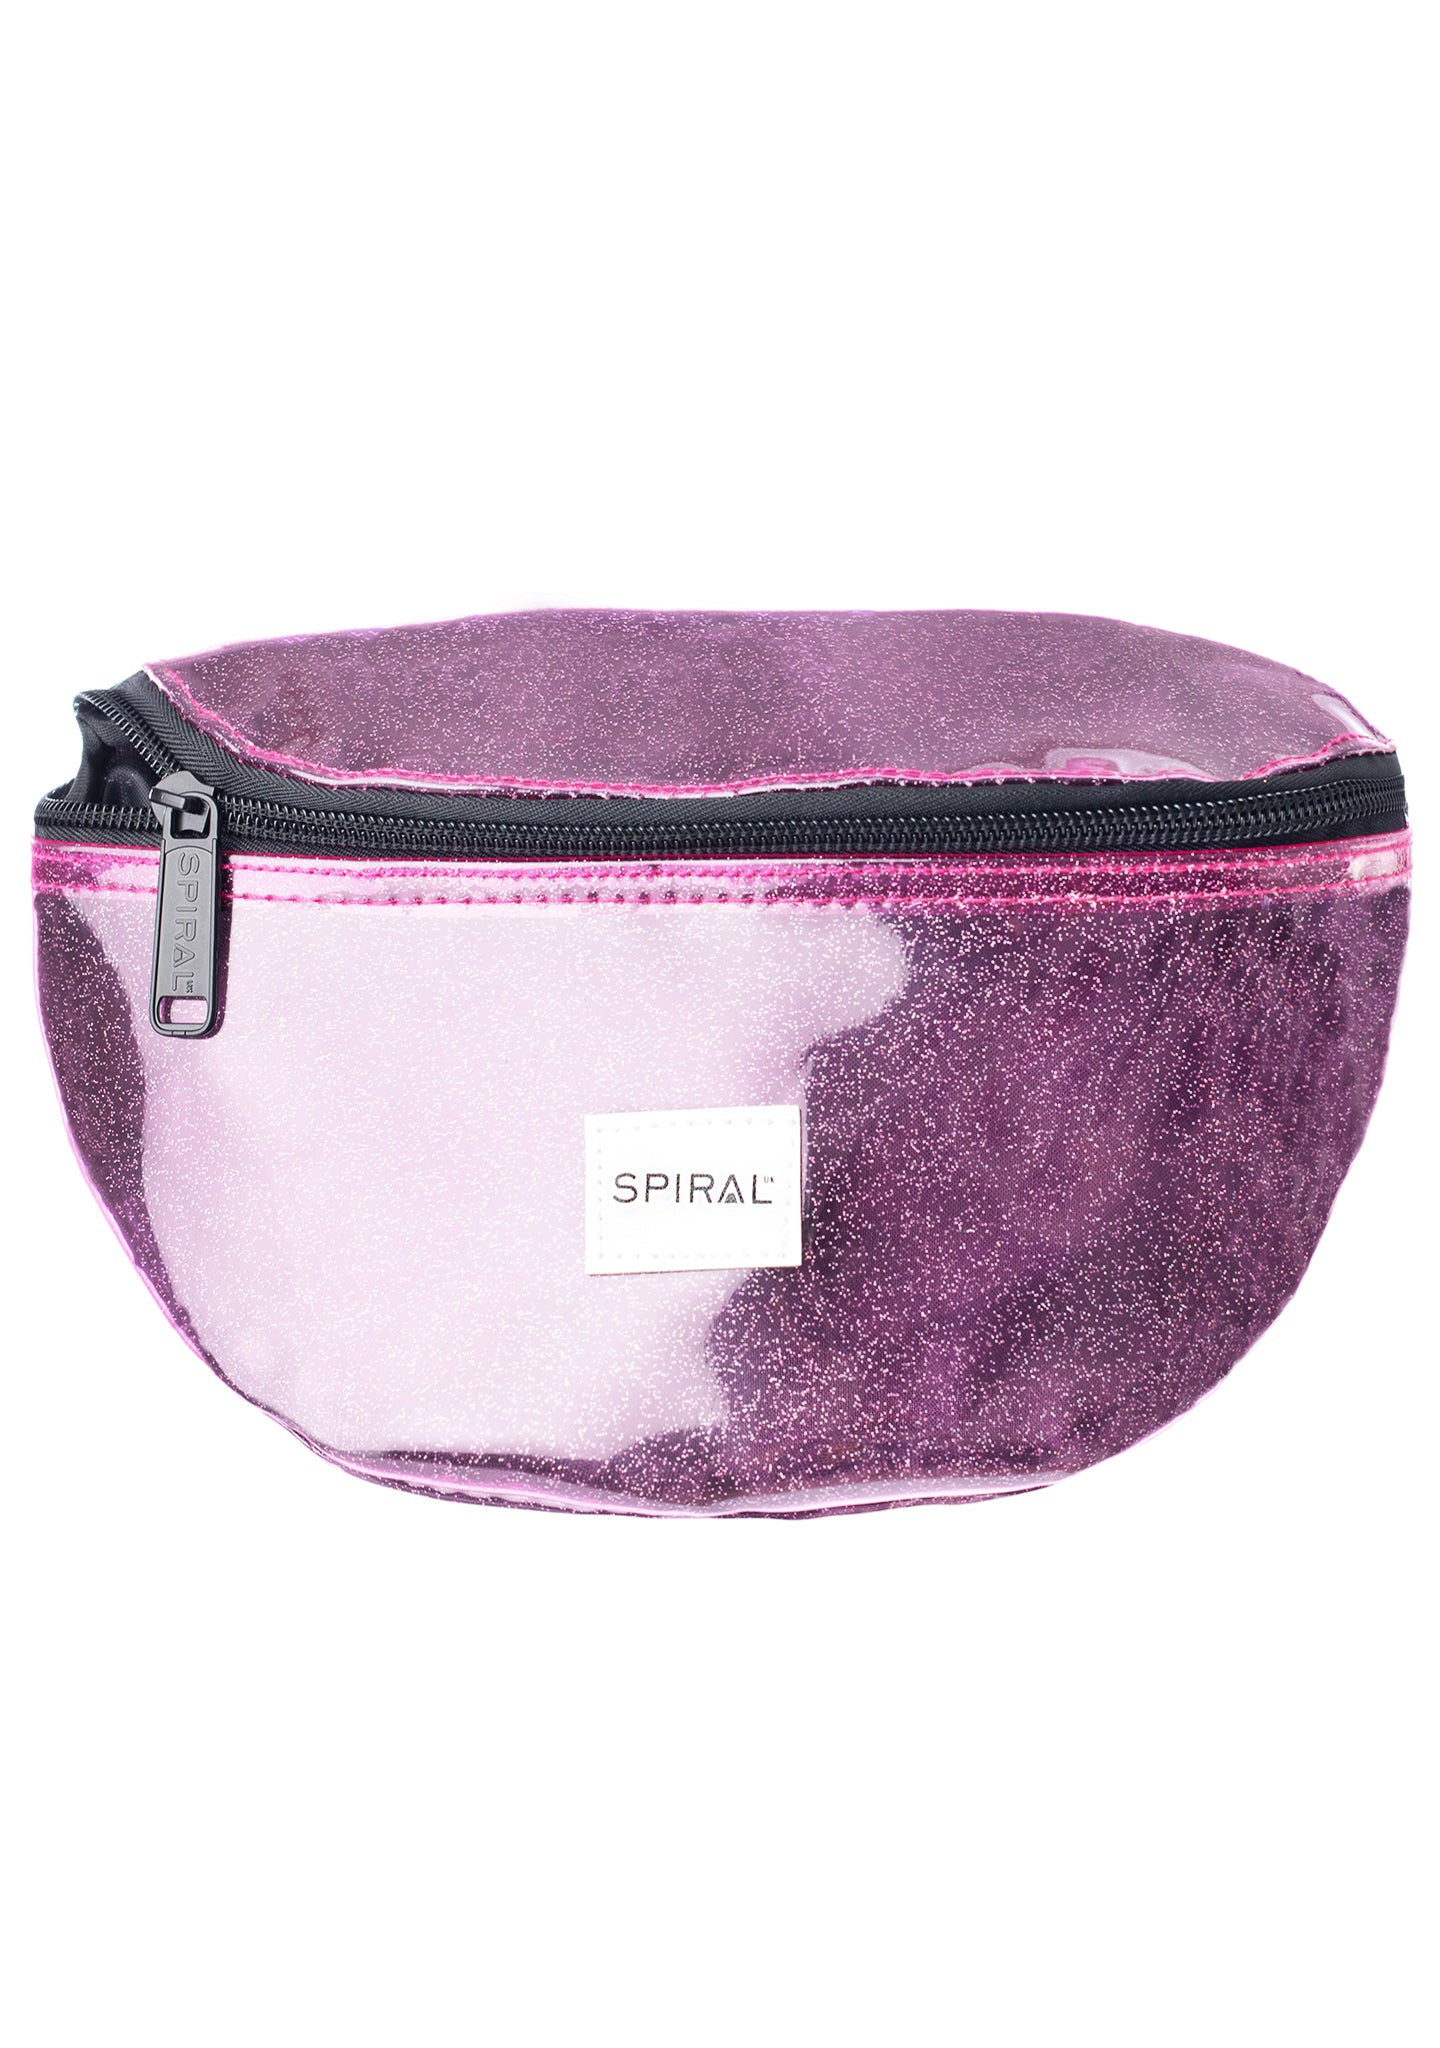 See Thru Sparkle Bum Bag in Purple